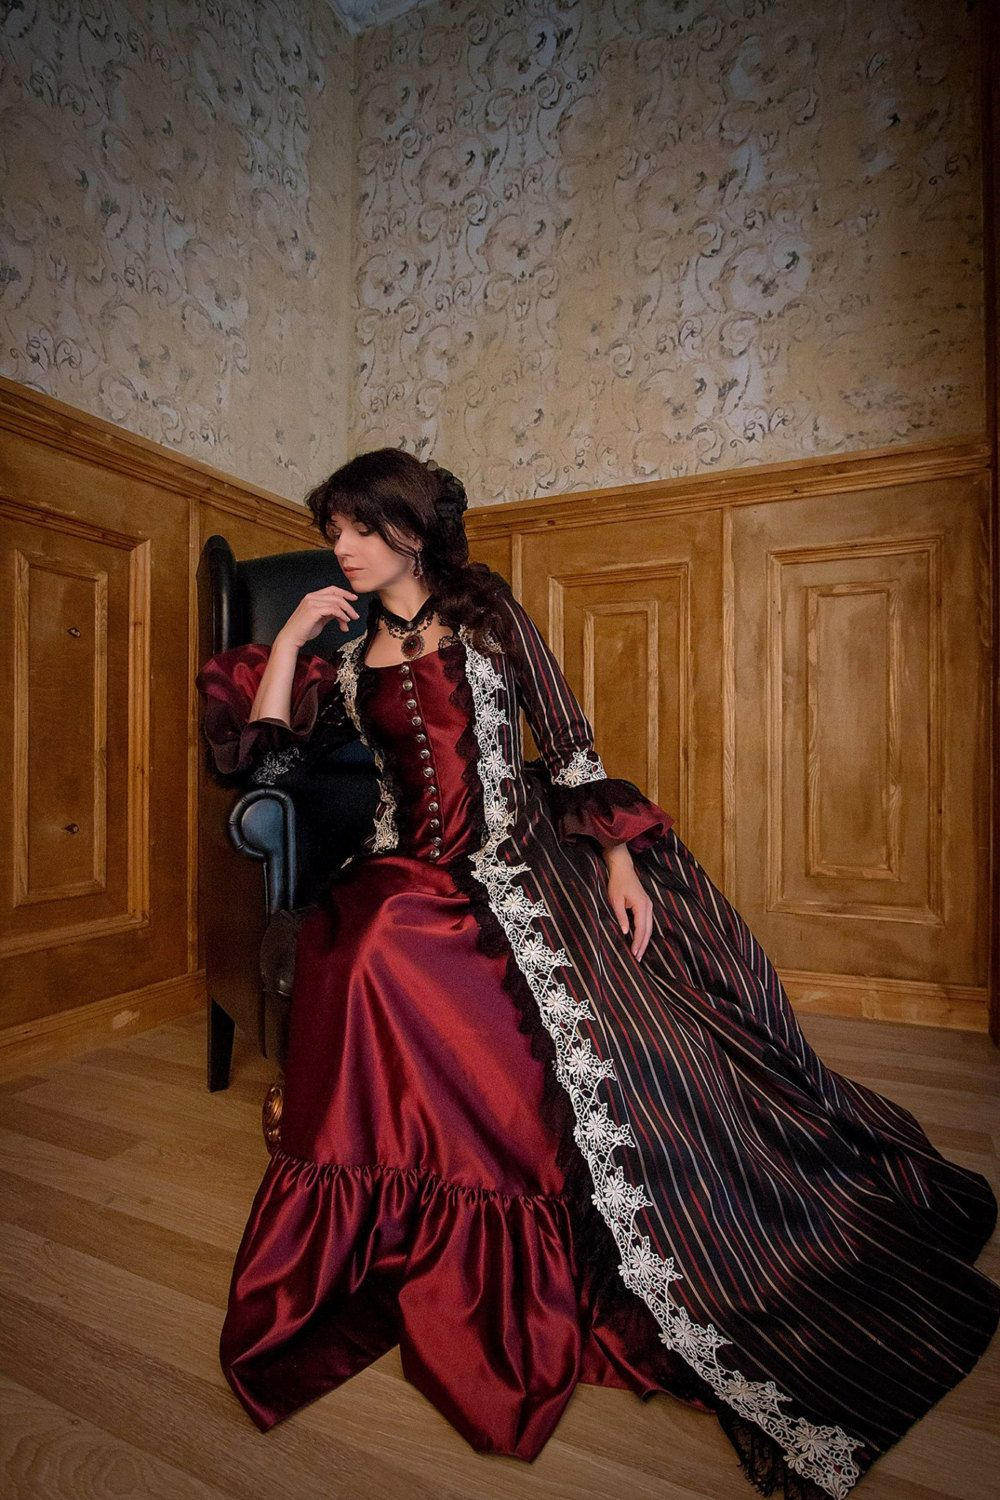 Victorian stripped costume bustle skirt dress made to order